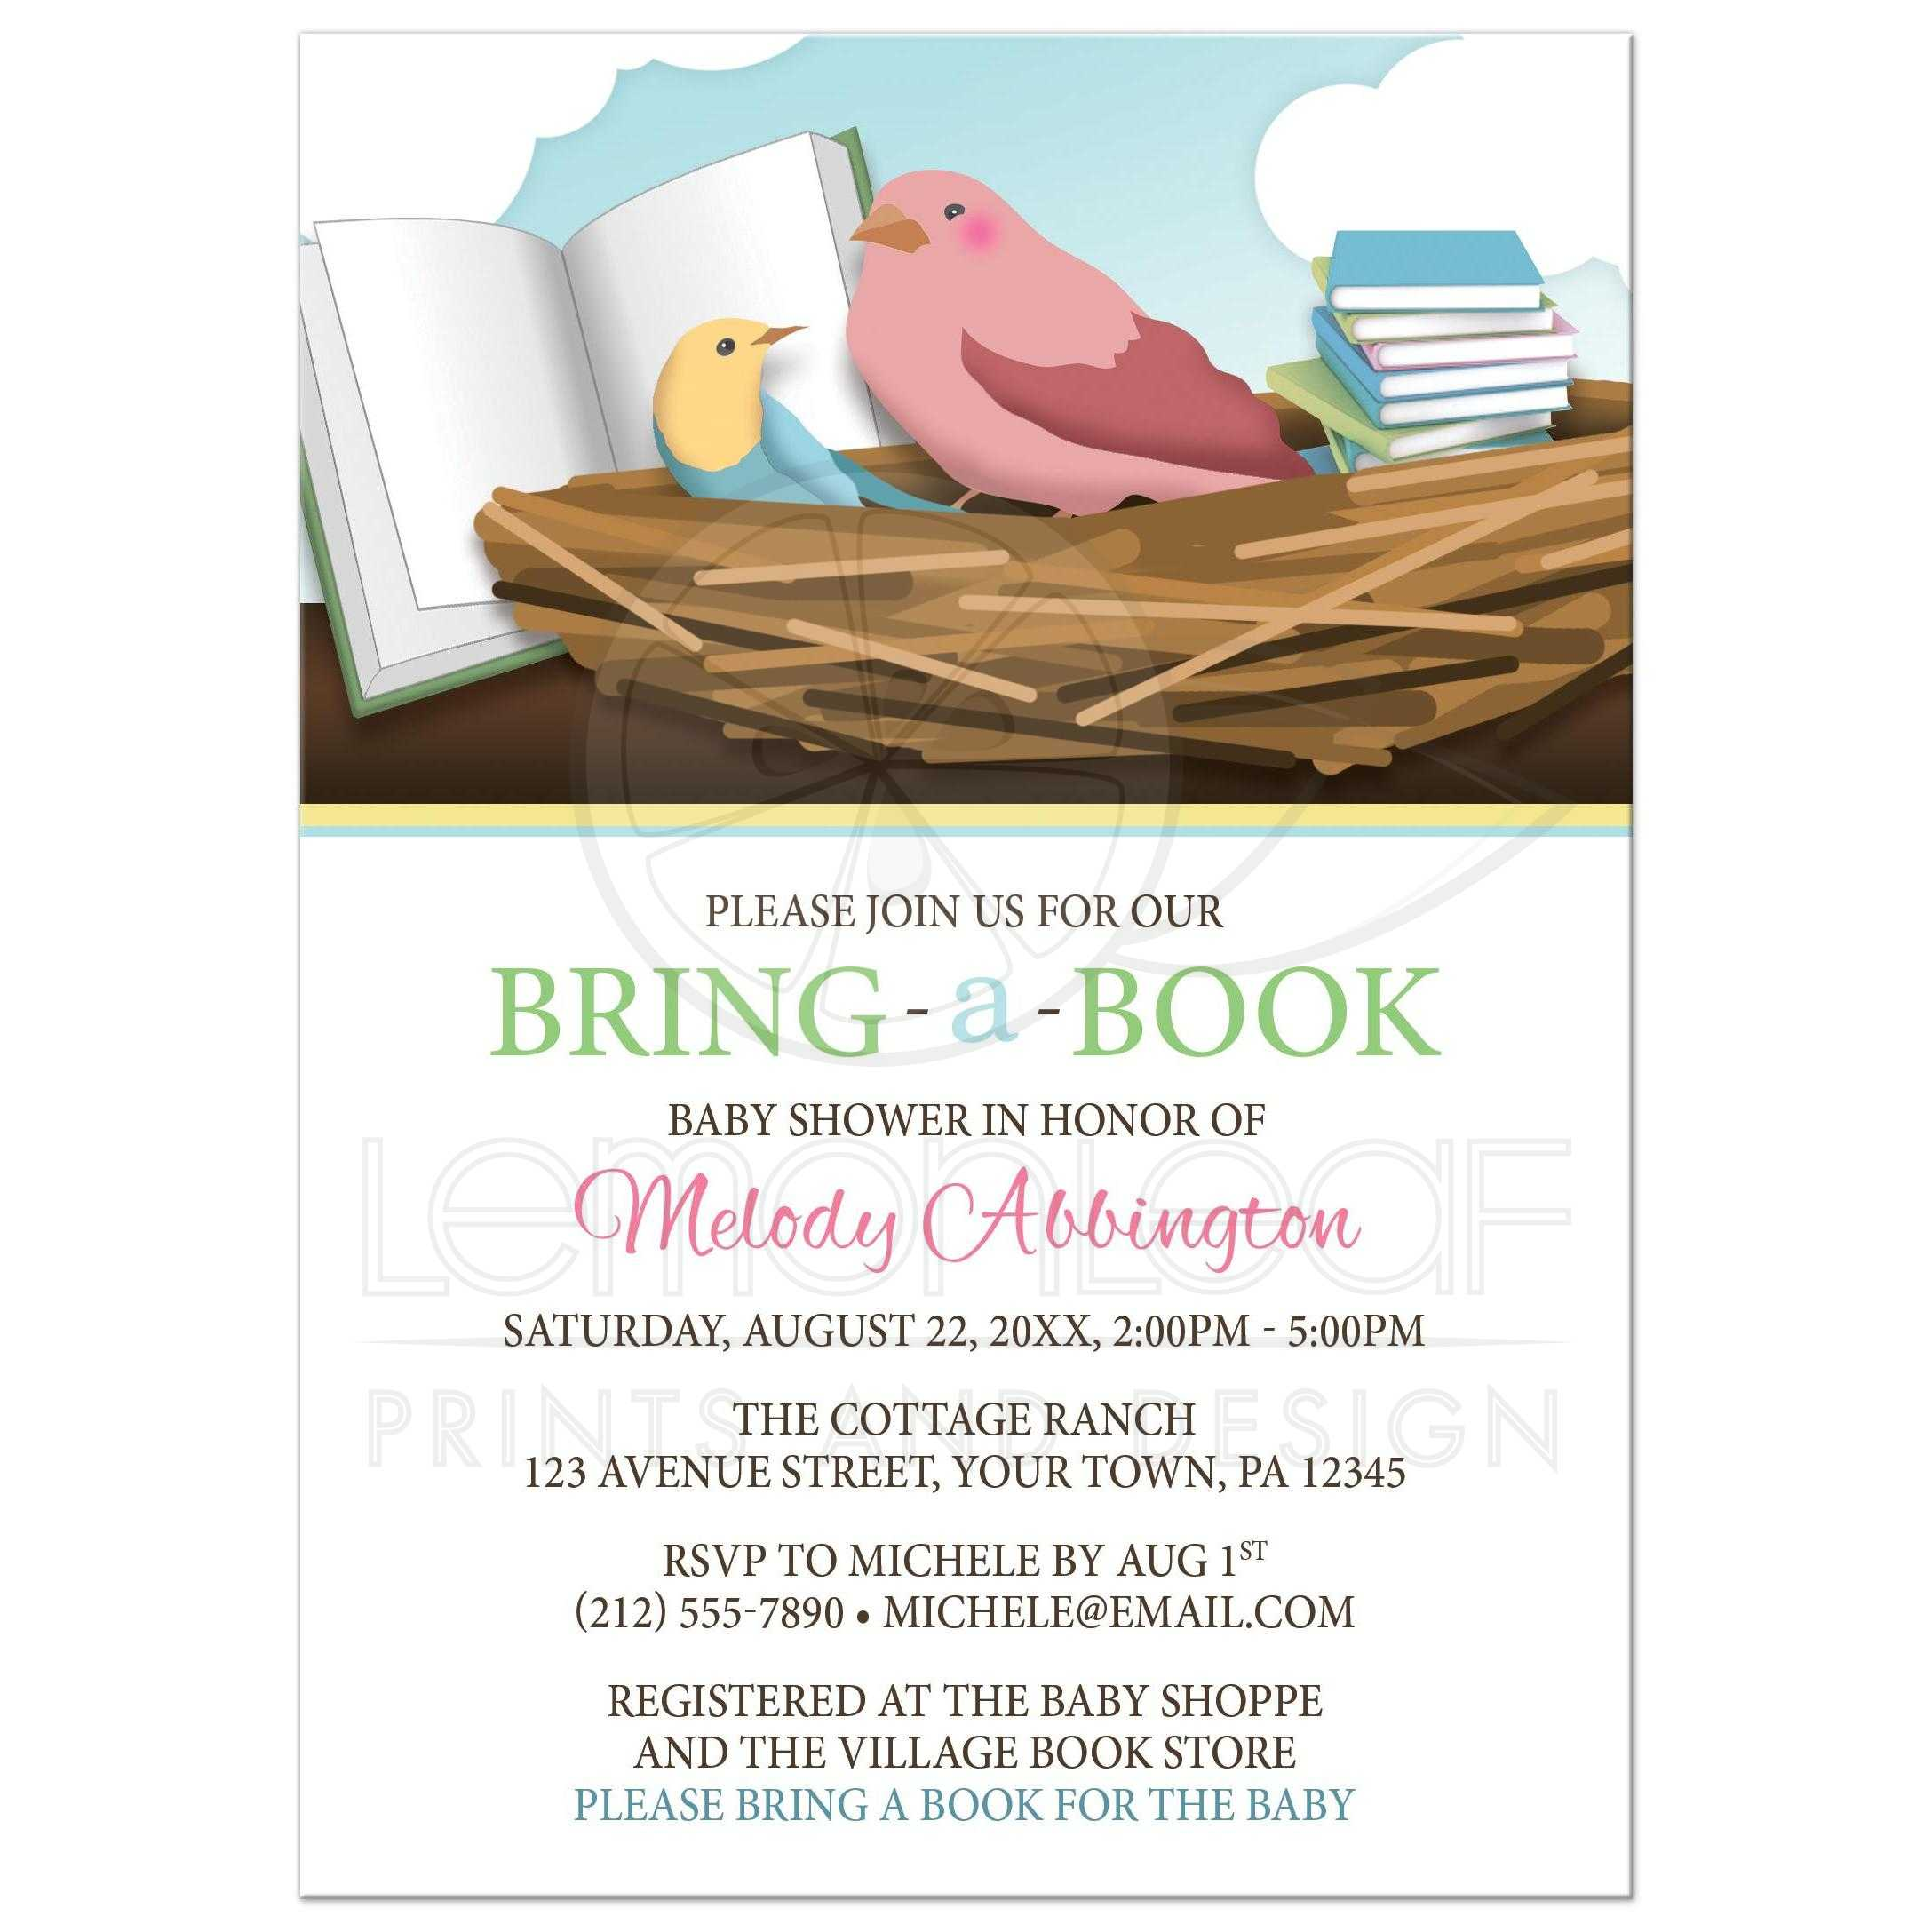 Baby Shower Invitations - Bird Nest Bring a Book